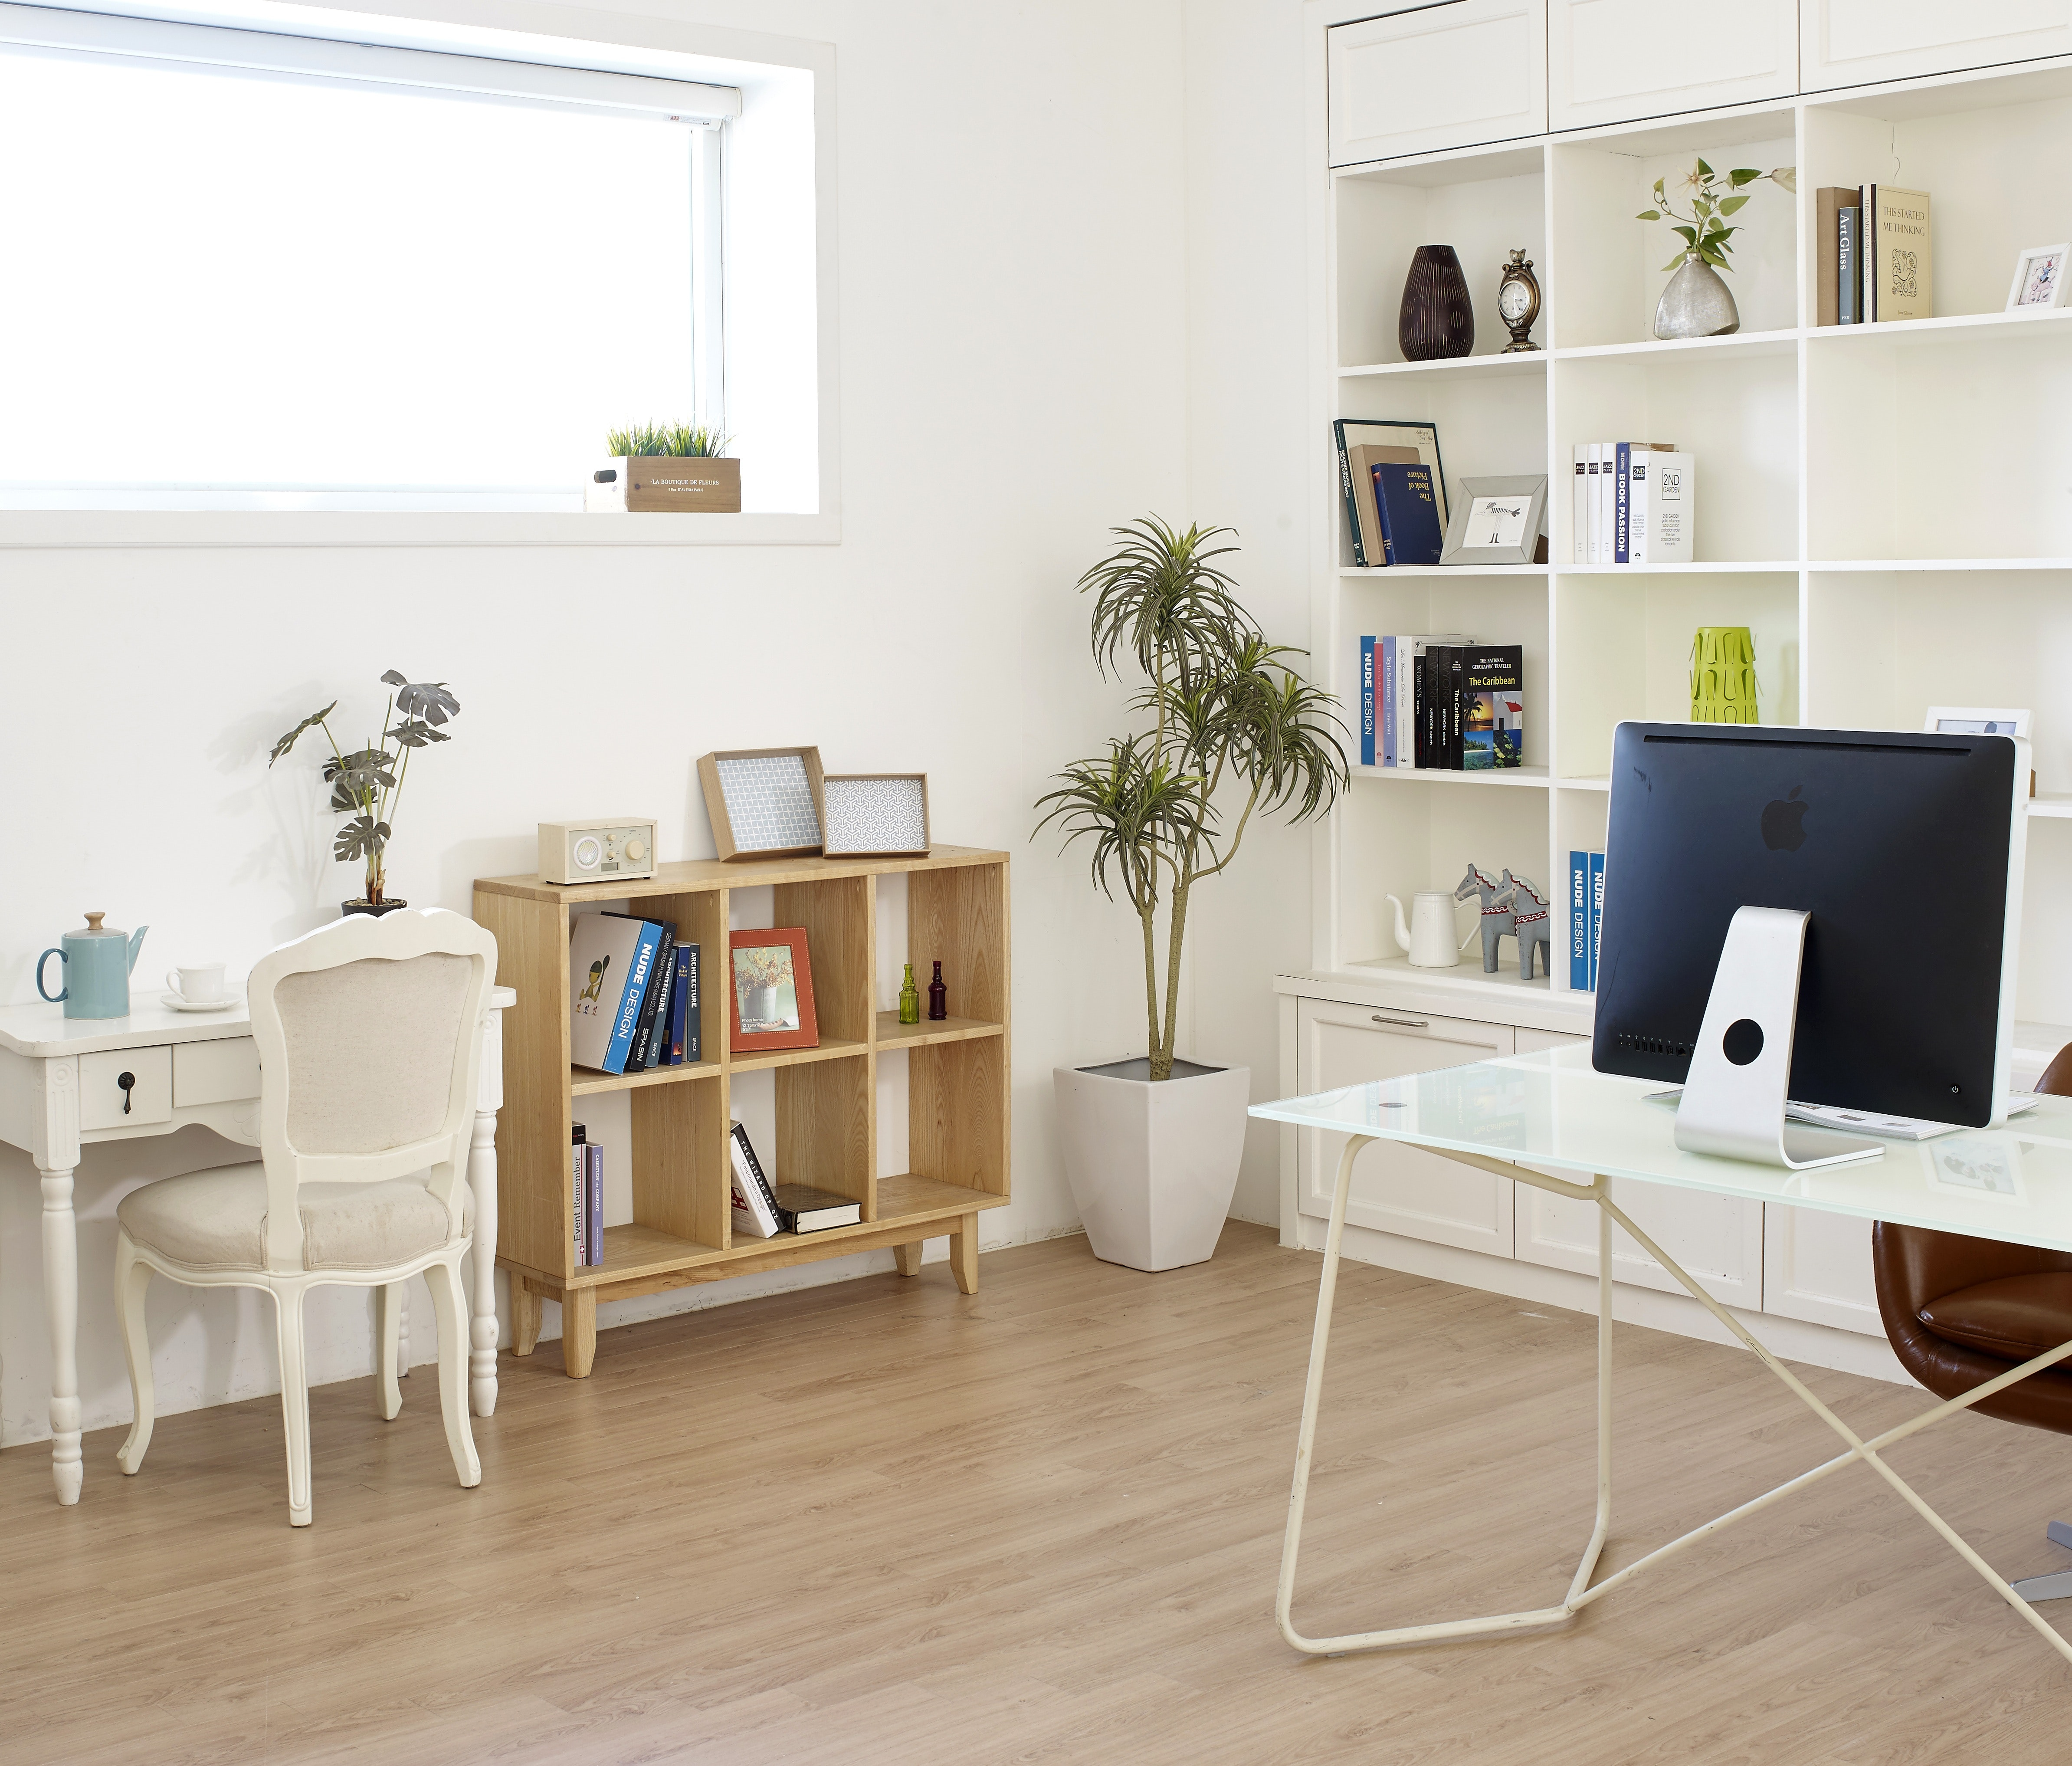 Maintaining A Sleek and Simple Home Space